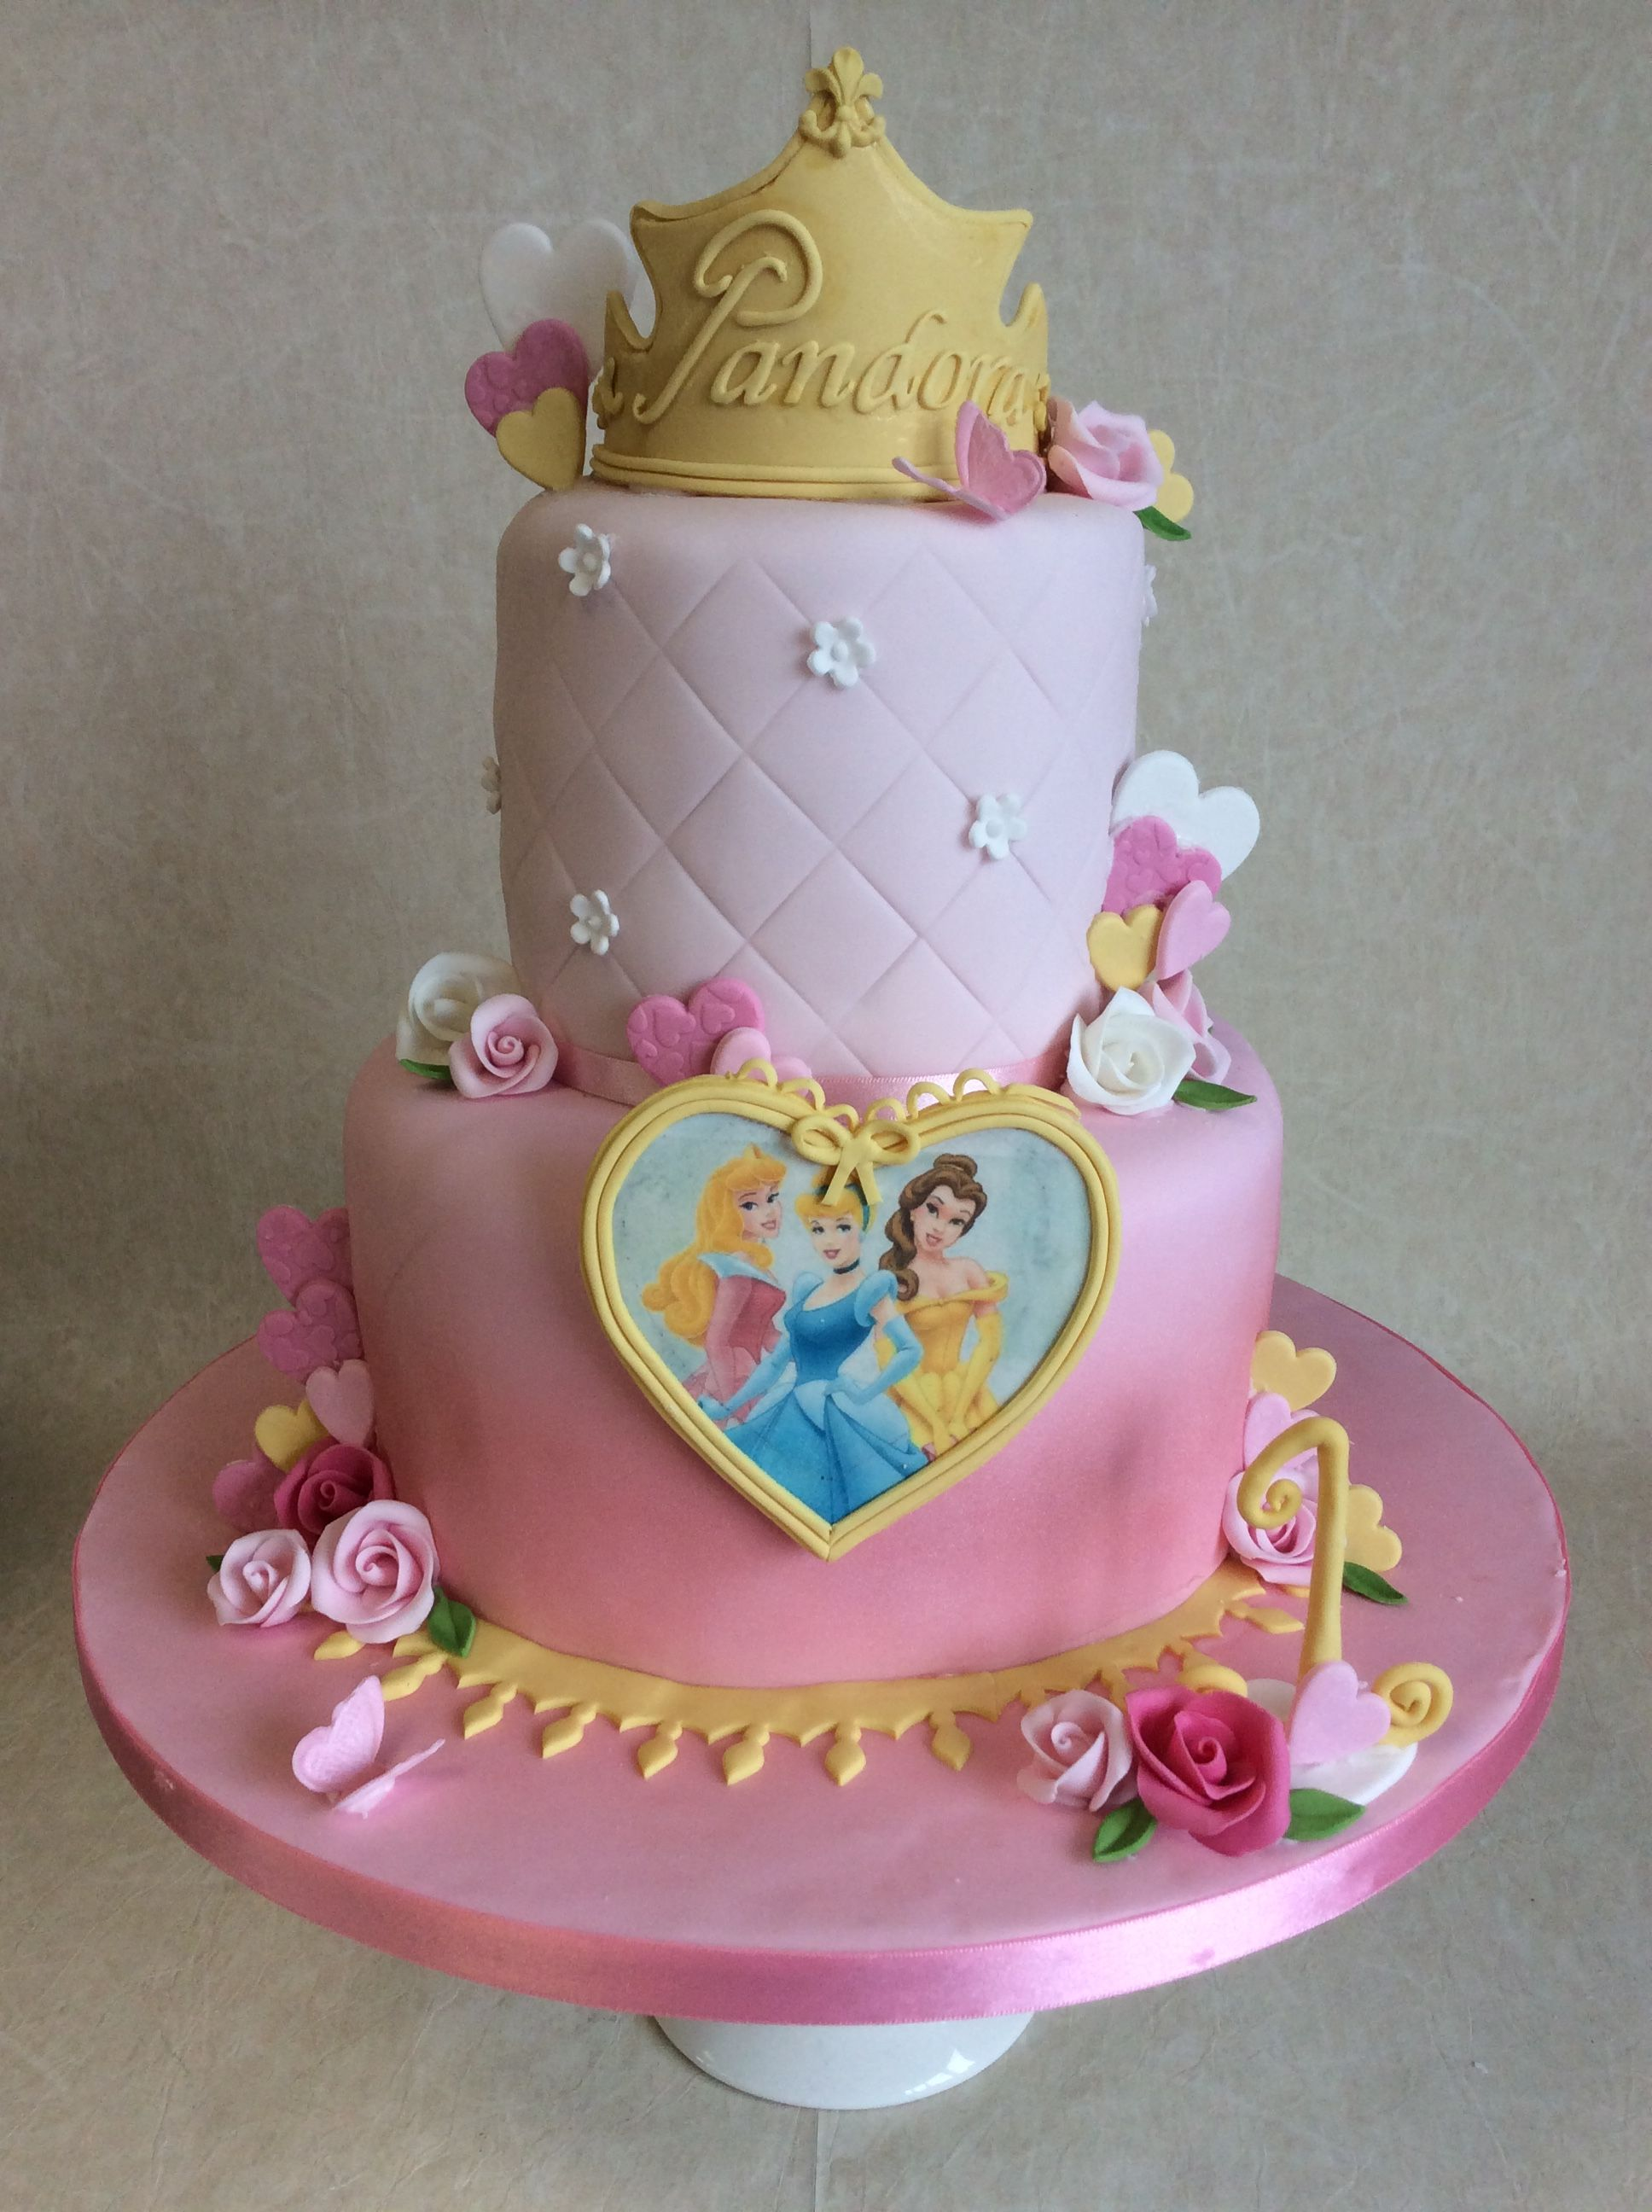 2 Tier Disney Princess Theme 1st Birthday Cake Cake Cupcakes